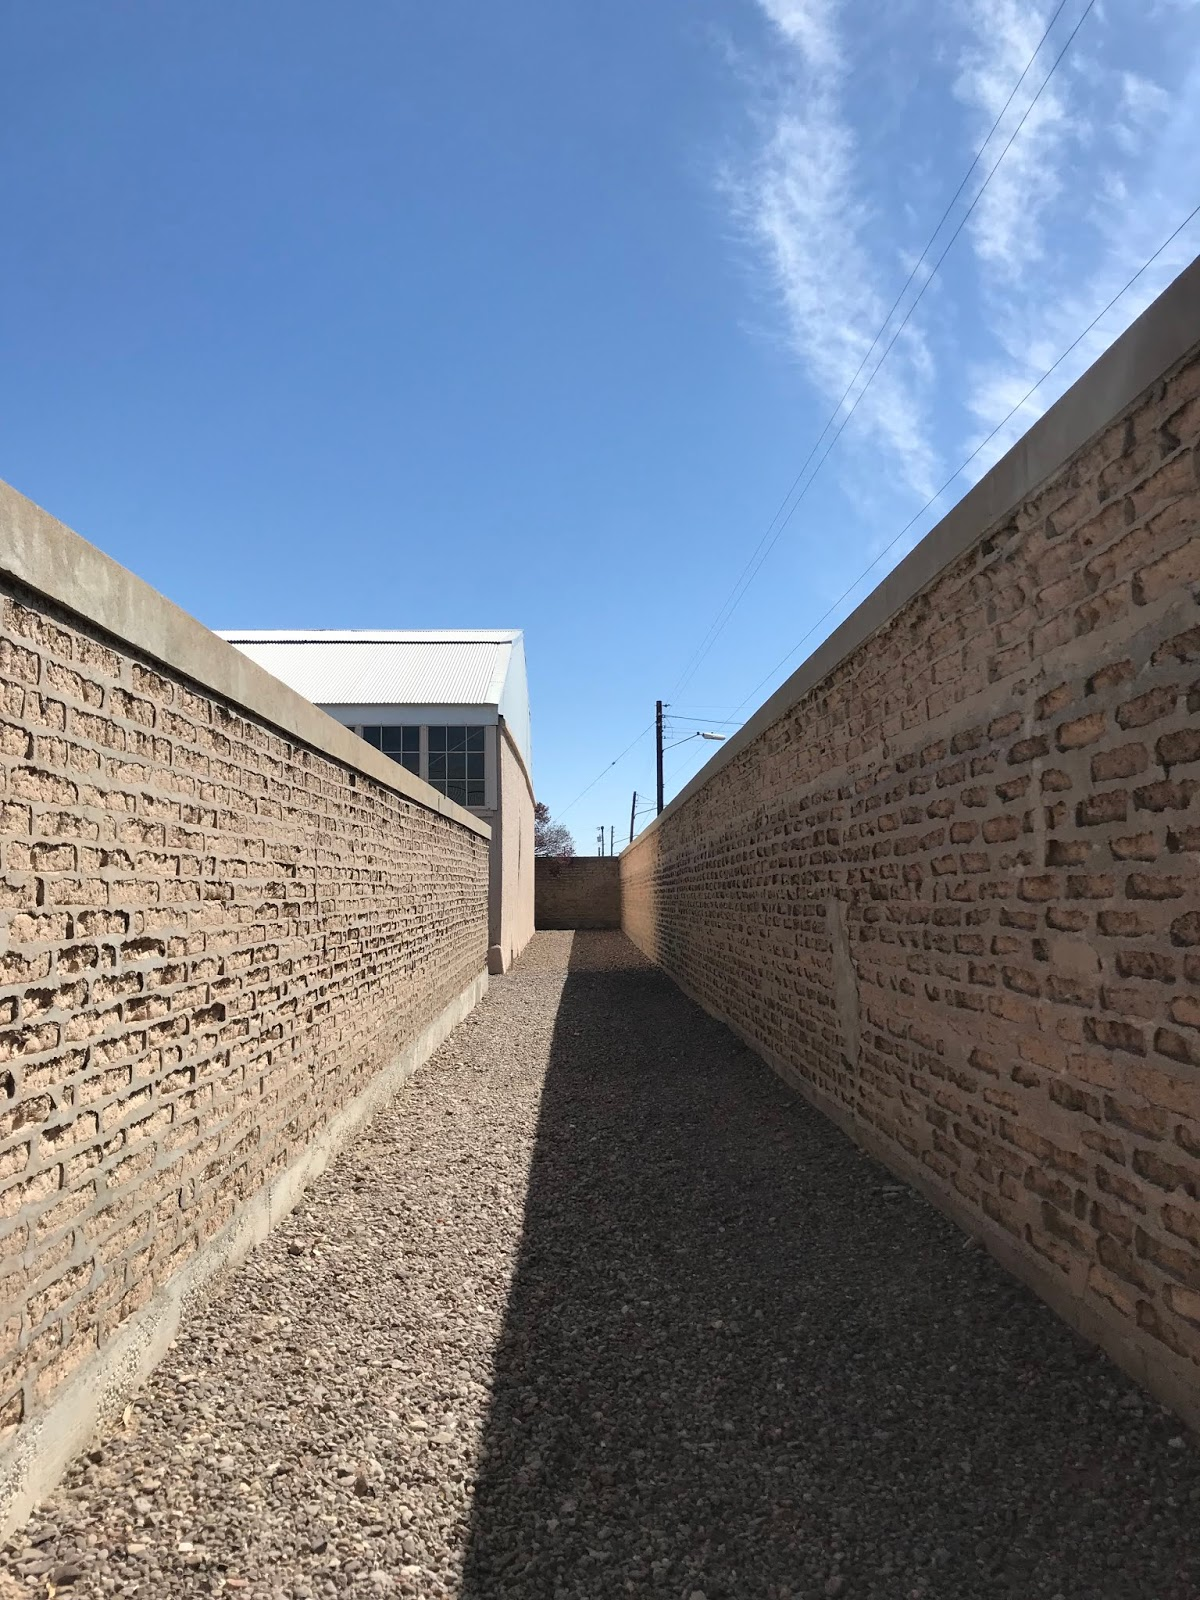 Judd Foundation - La Mansana de Chinati/The Block